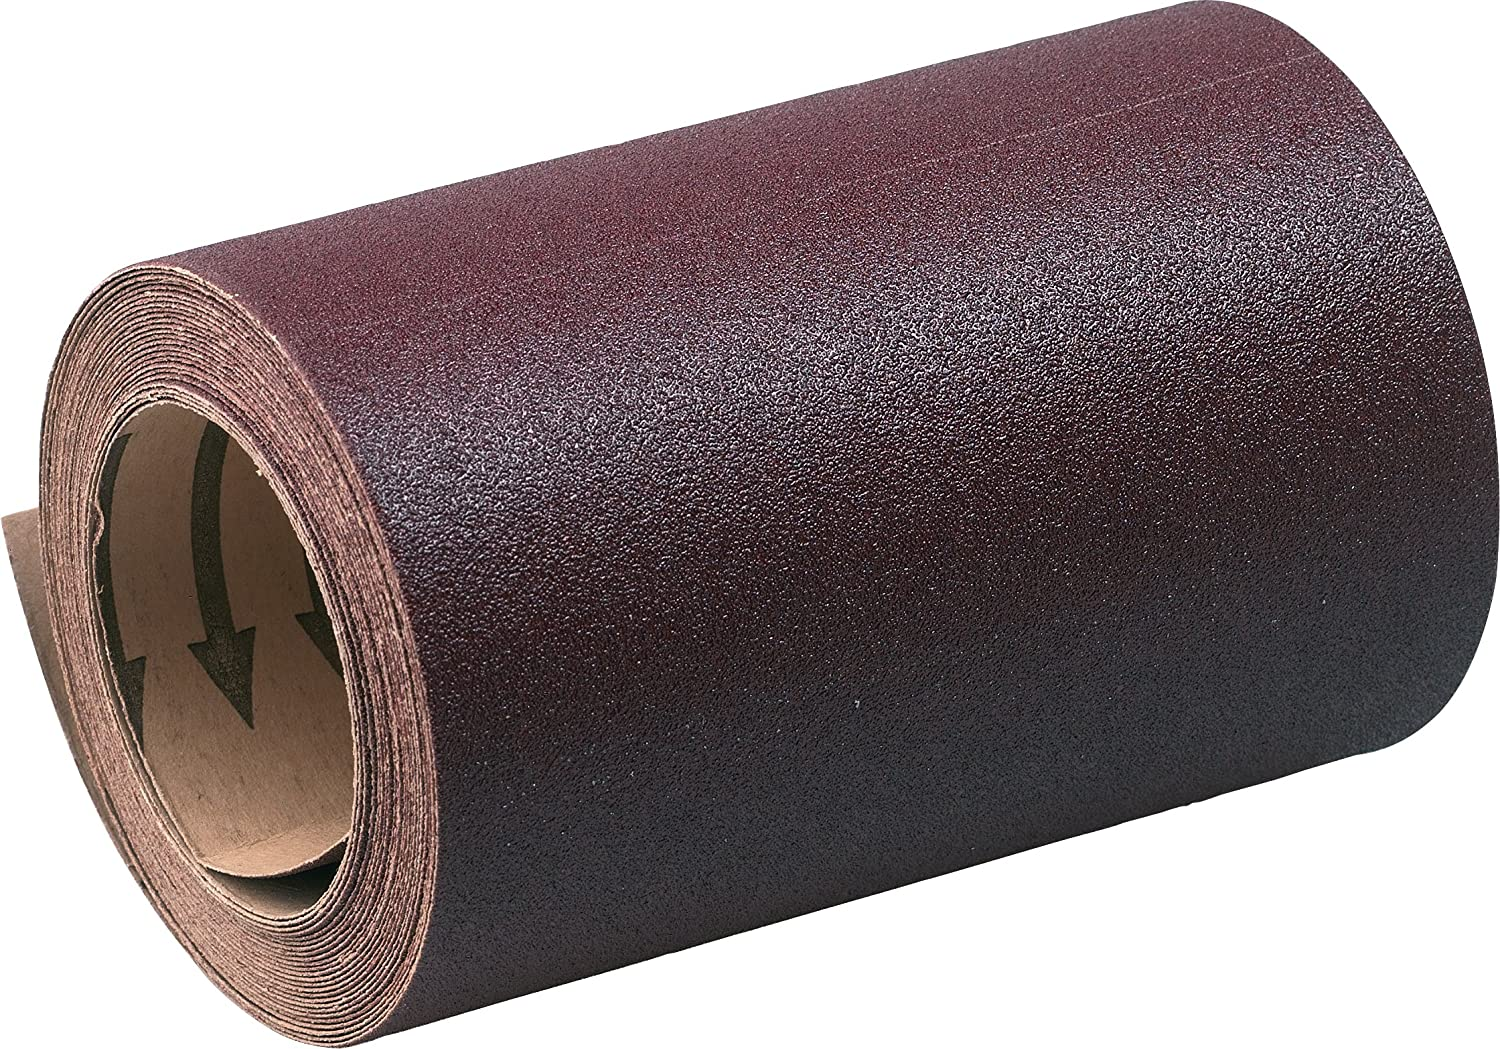 Makita P-38130 Sanding Roll, Multi-Colour